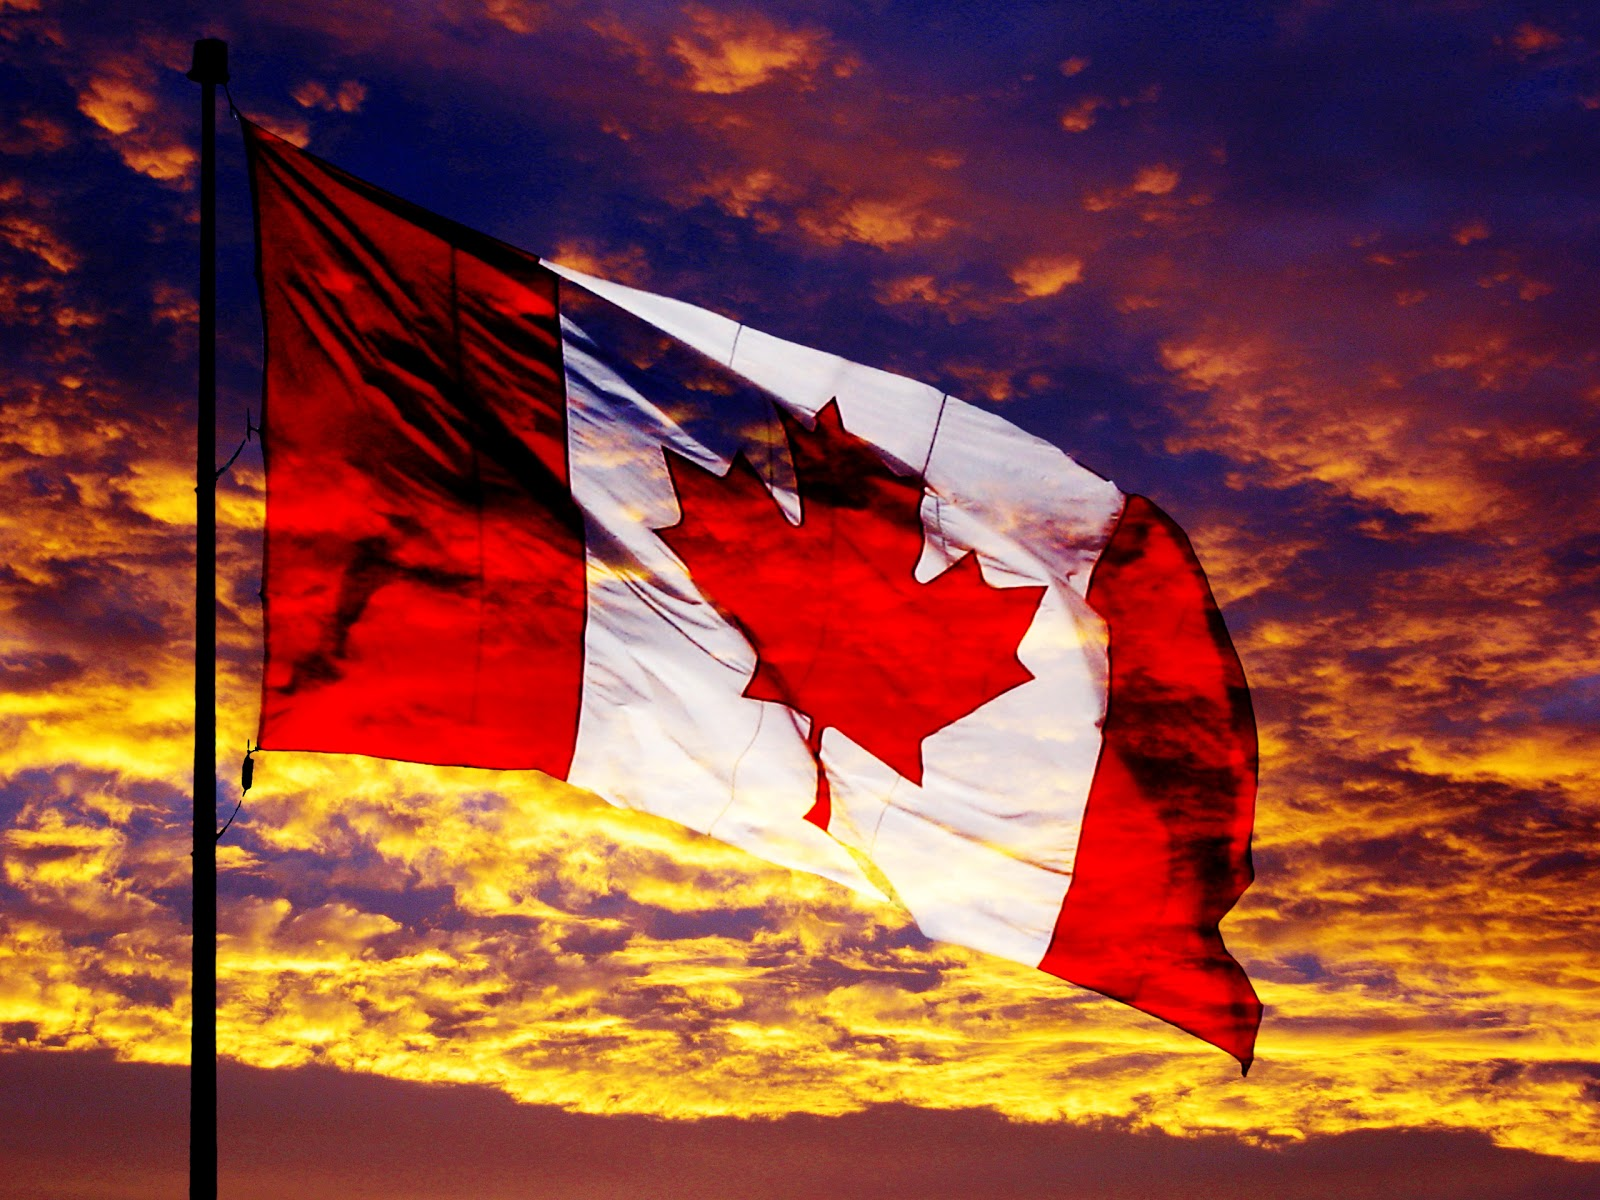 central wallpaper  awesome canada flag designs hd wallpapers